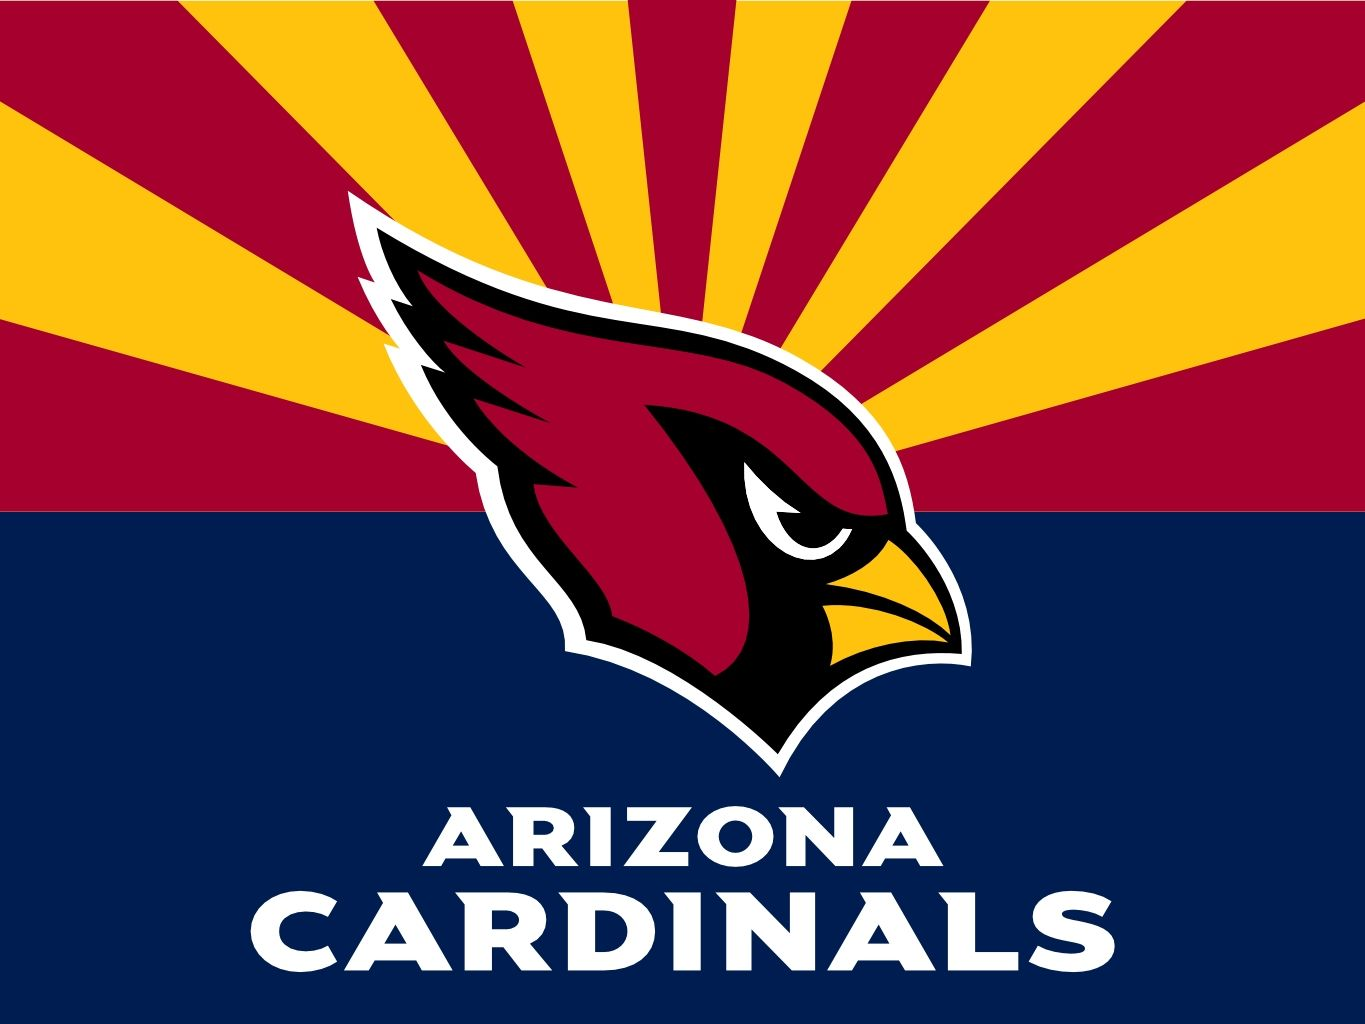 Arizona Cardinals On Twitter Desert For Your Screen Arizona Cardinals Football Cardinals Arizona Cardinals